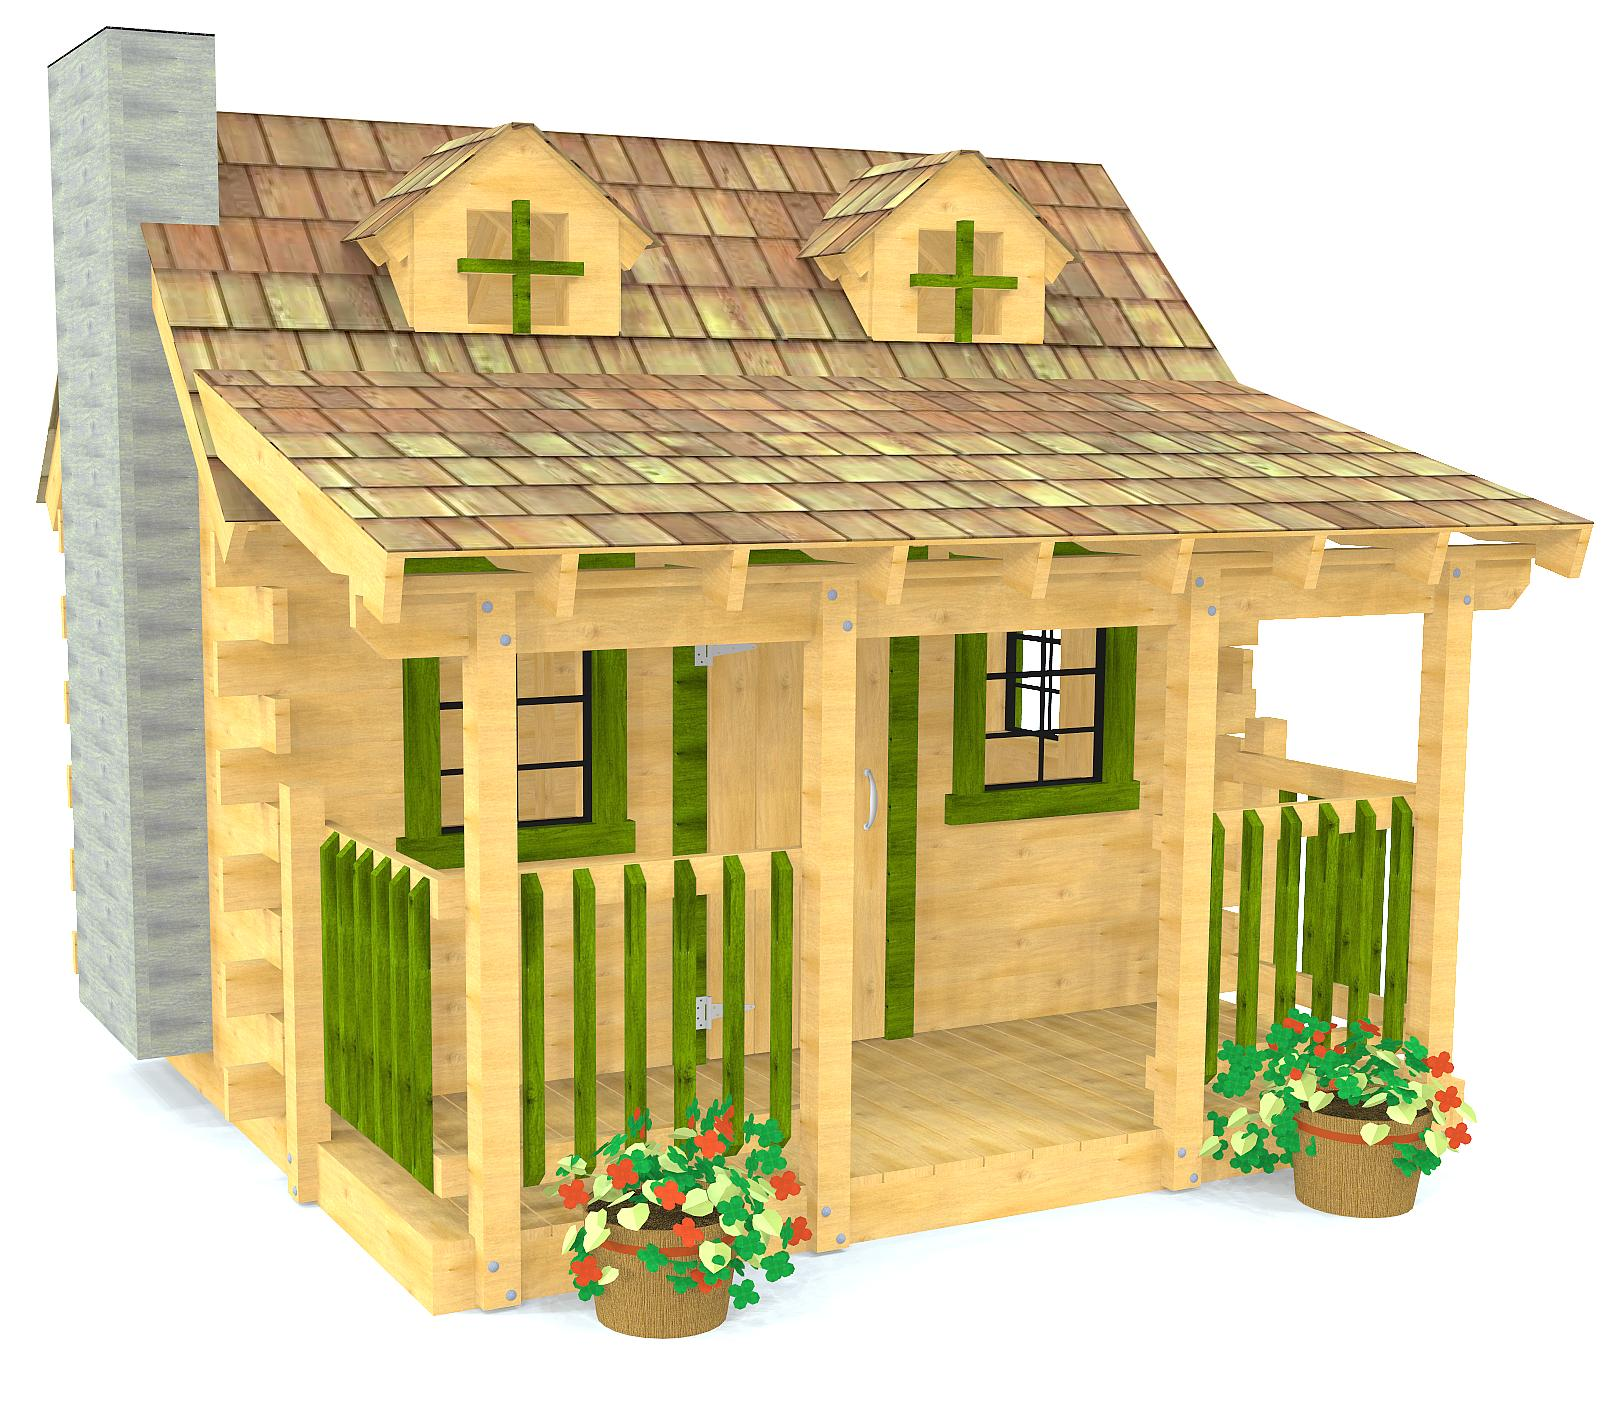 10x10 Log Cabin Playhouse Plan For Kids Paul S Playhouses